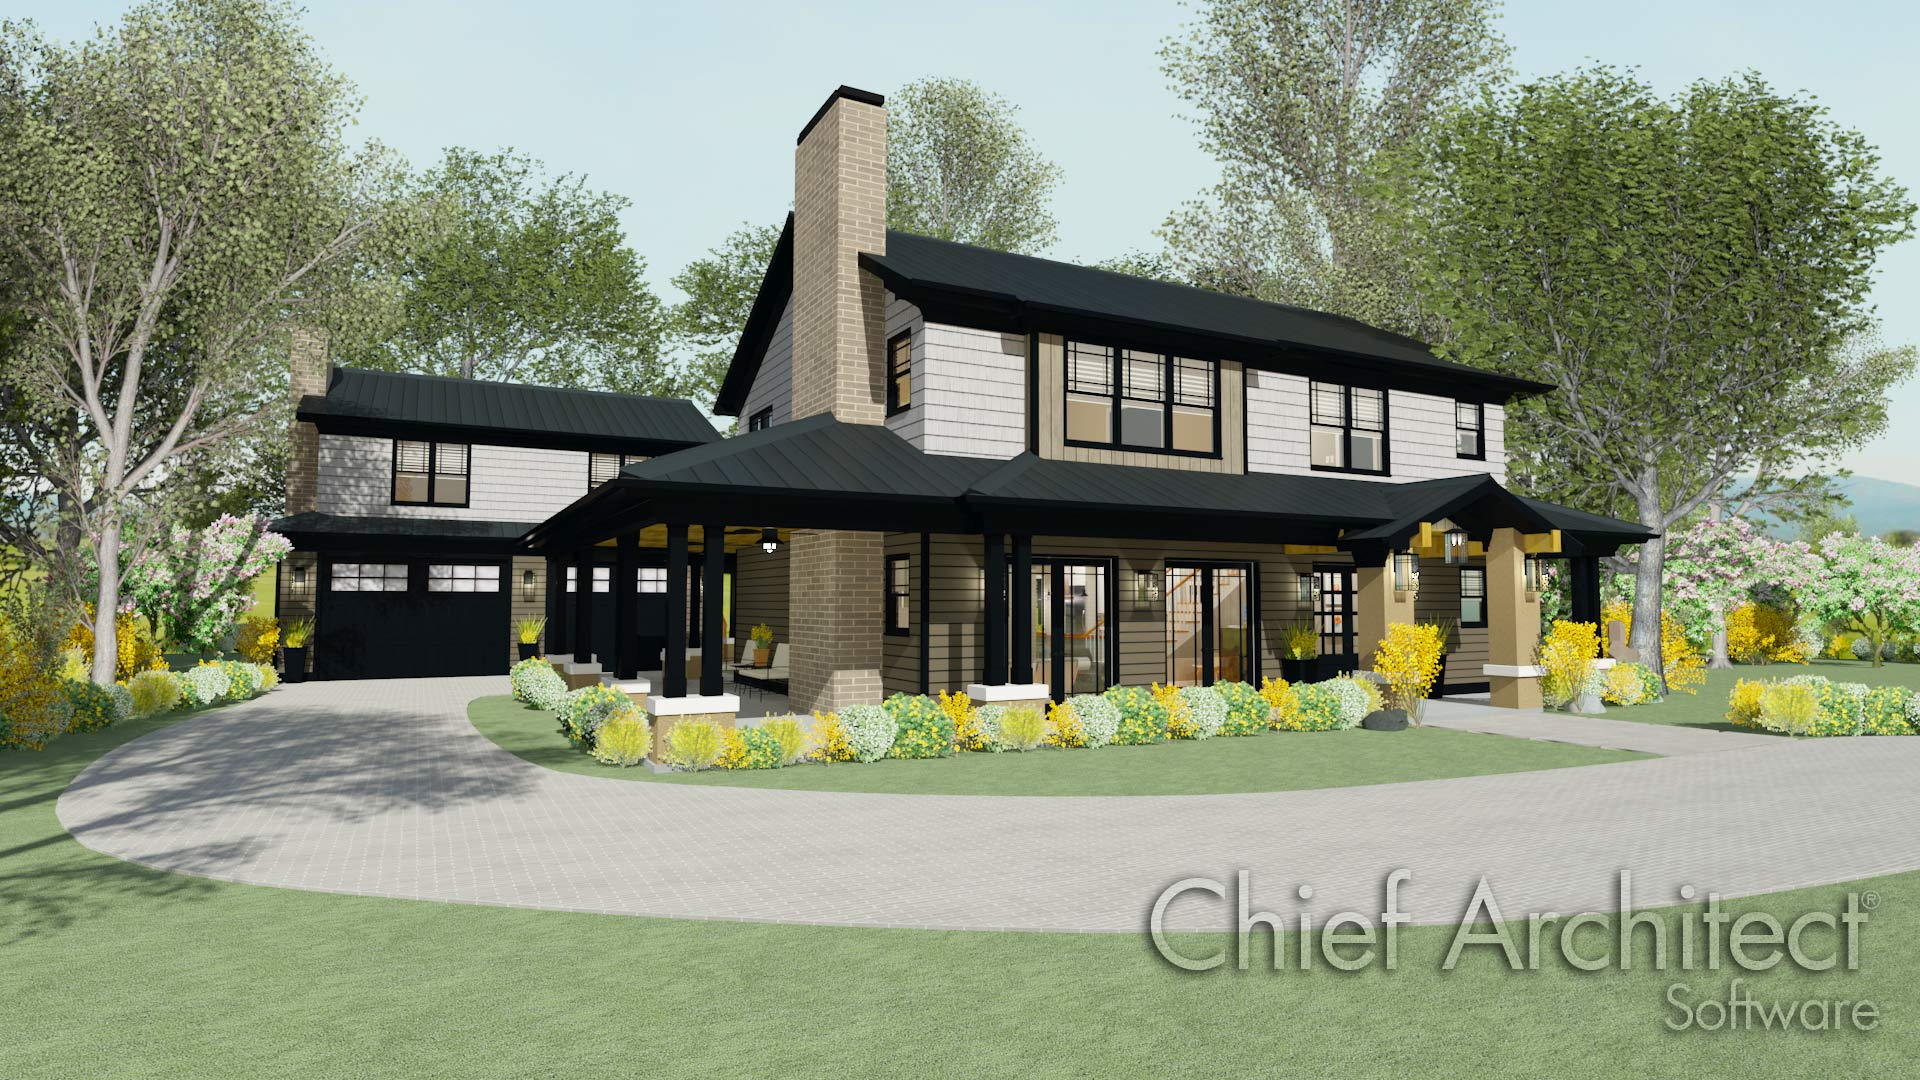 Chief architect home design software samples gallery for Easy architectural software